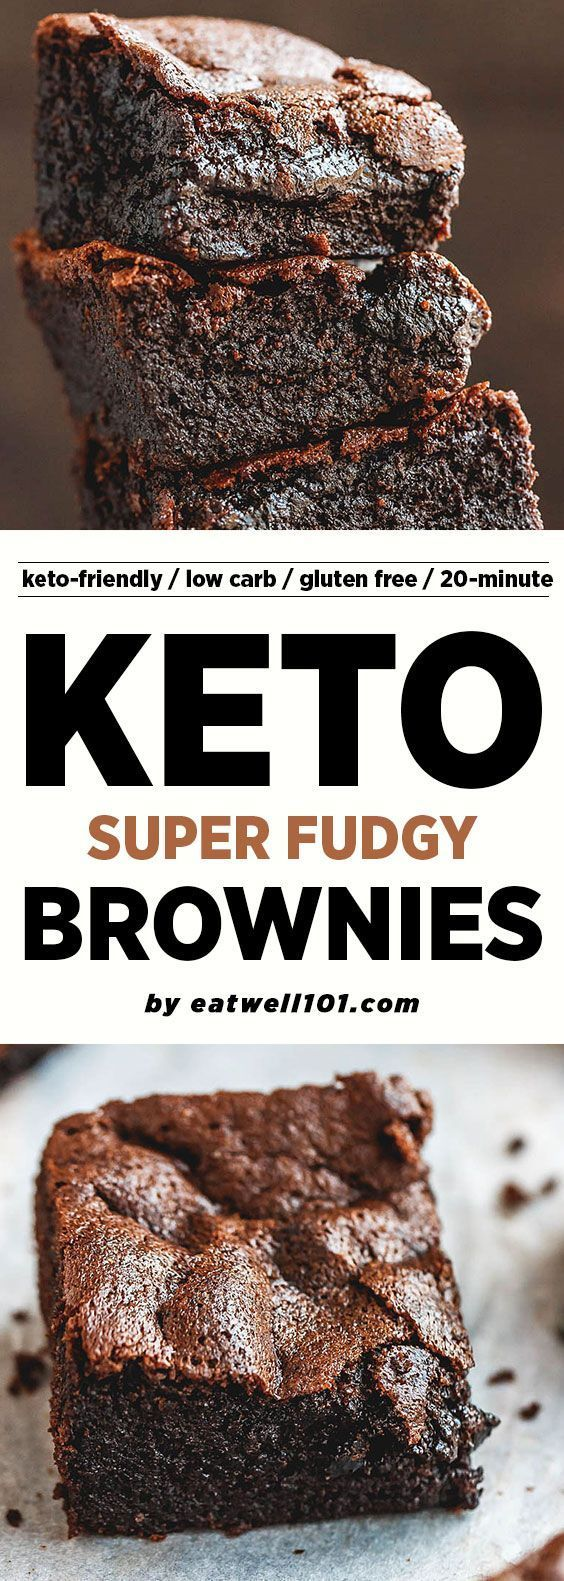 Fudgy Low-Carb Keto Brownies Rezept -  Low-Carb Keto Brownies Rezept – eatwell101Diese kohlenhydr